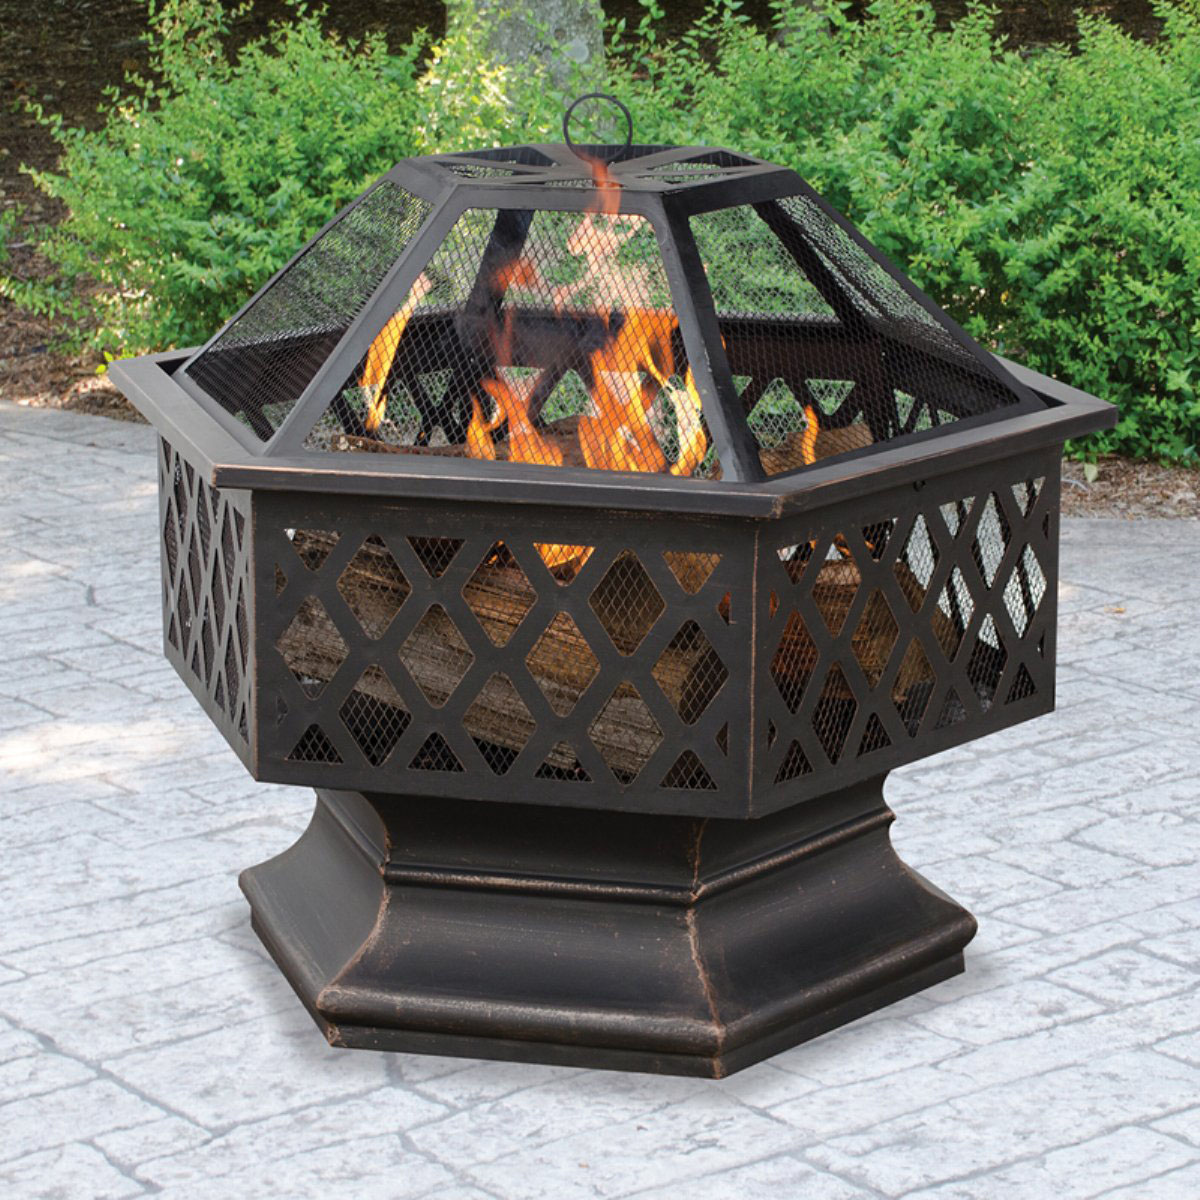 Wood Burning Fire Pit for the Home